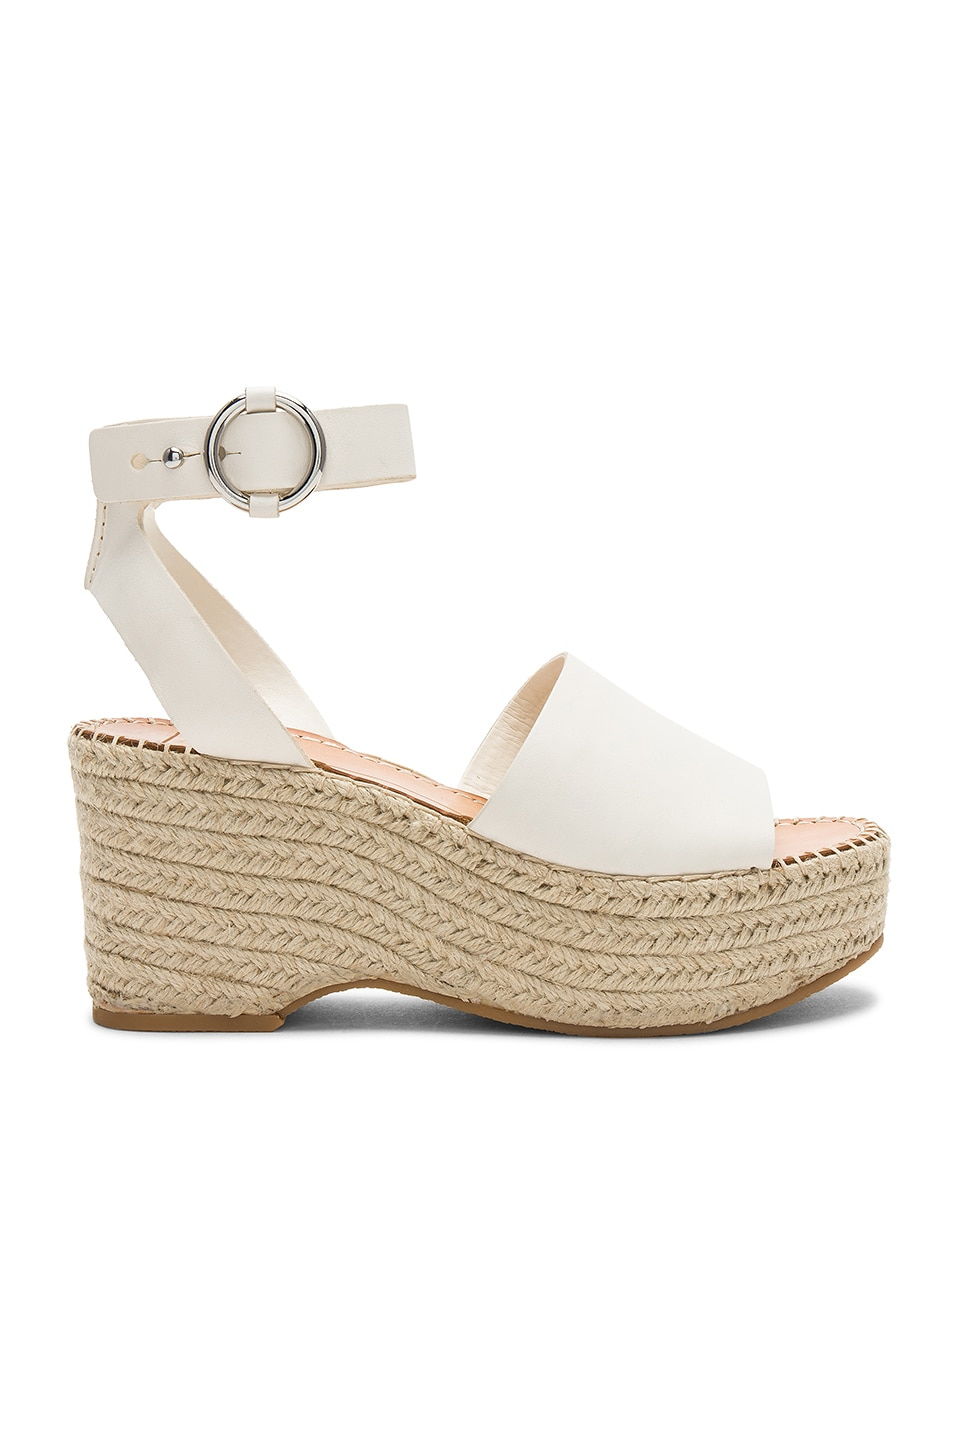 Dolce Vita Lesly Wedge in Off White